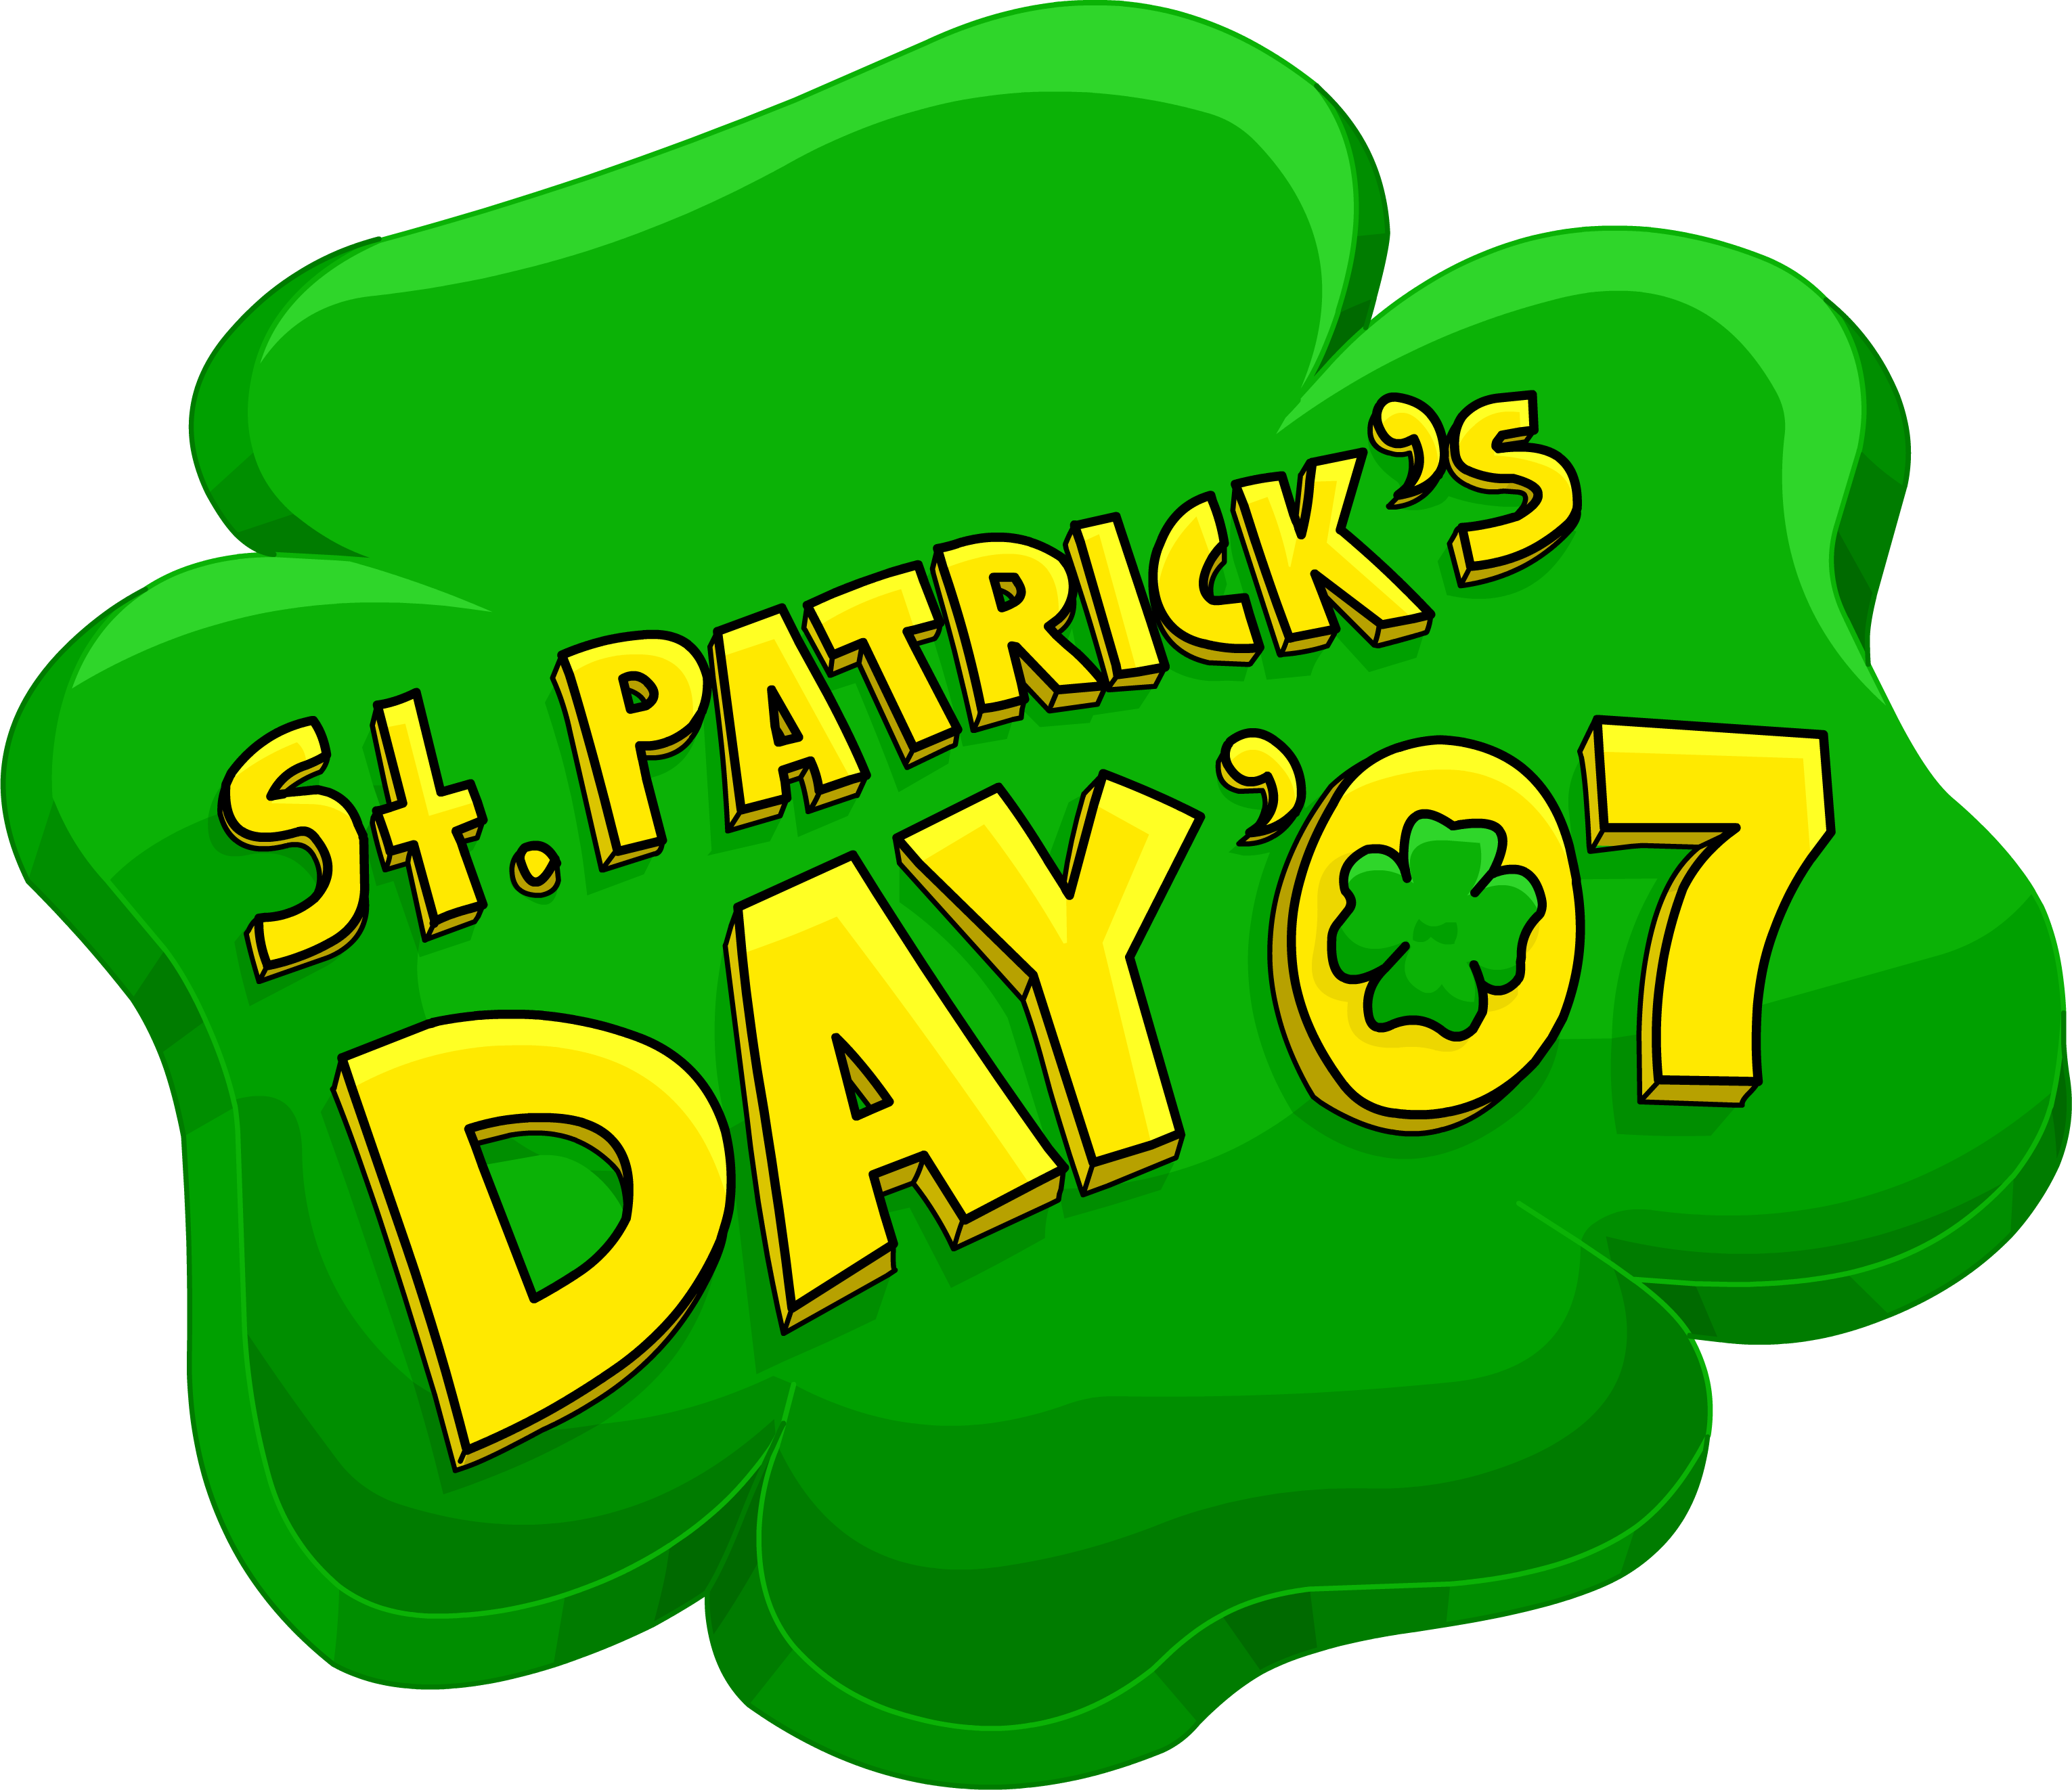 File:St. Patrick's Day Party 2007 logo.png